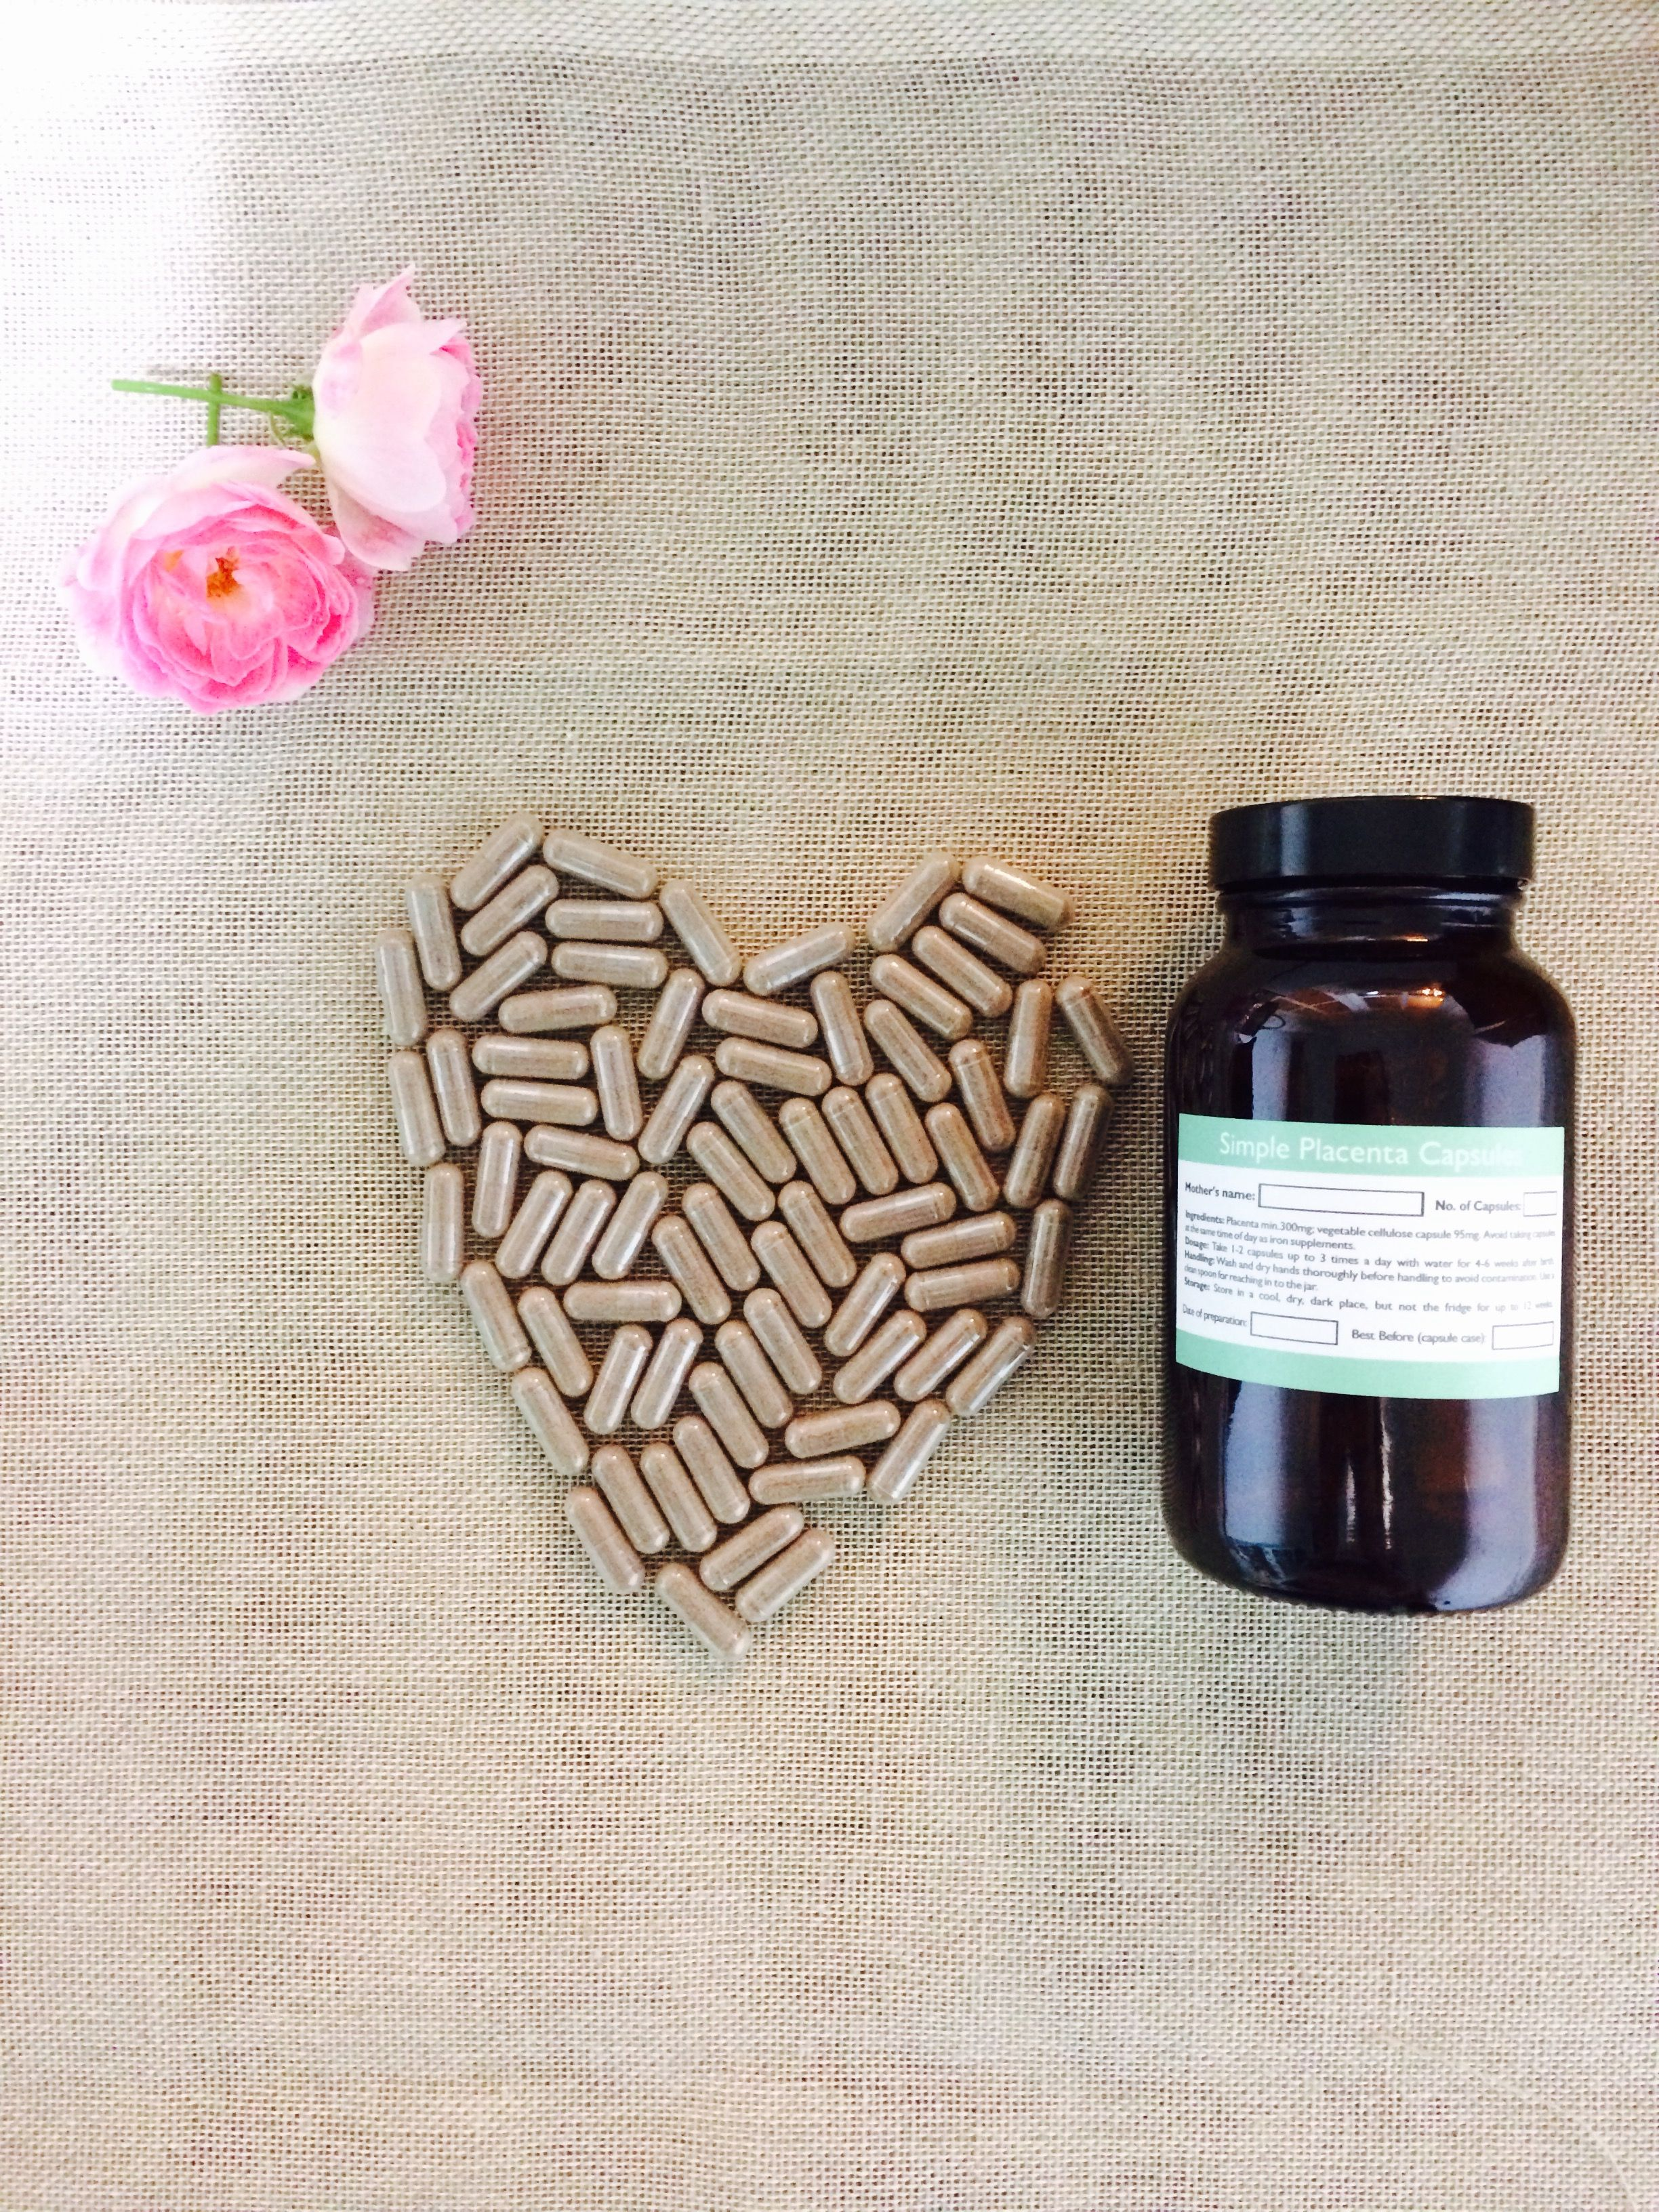 Placenta Encapsulation Specialist. Uks first approved www